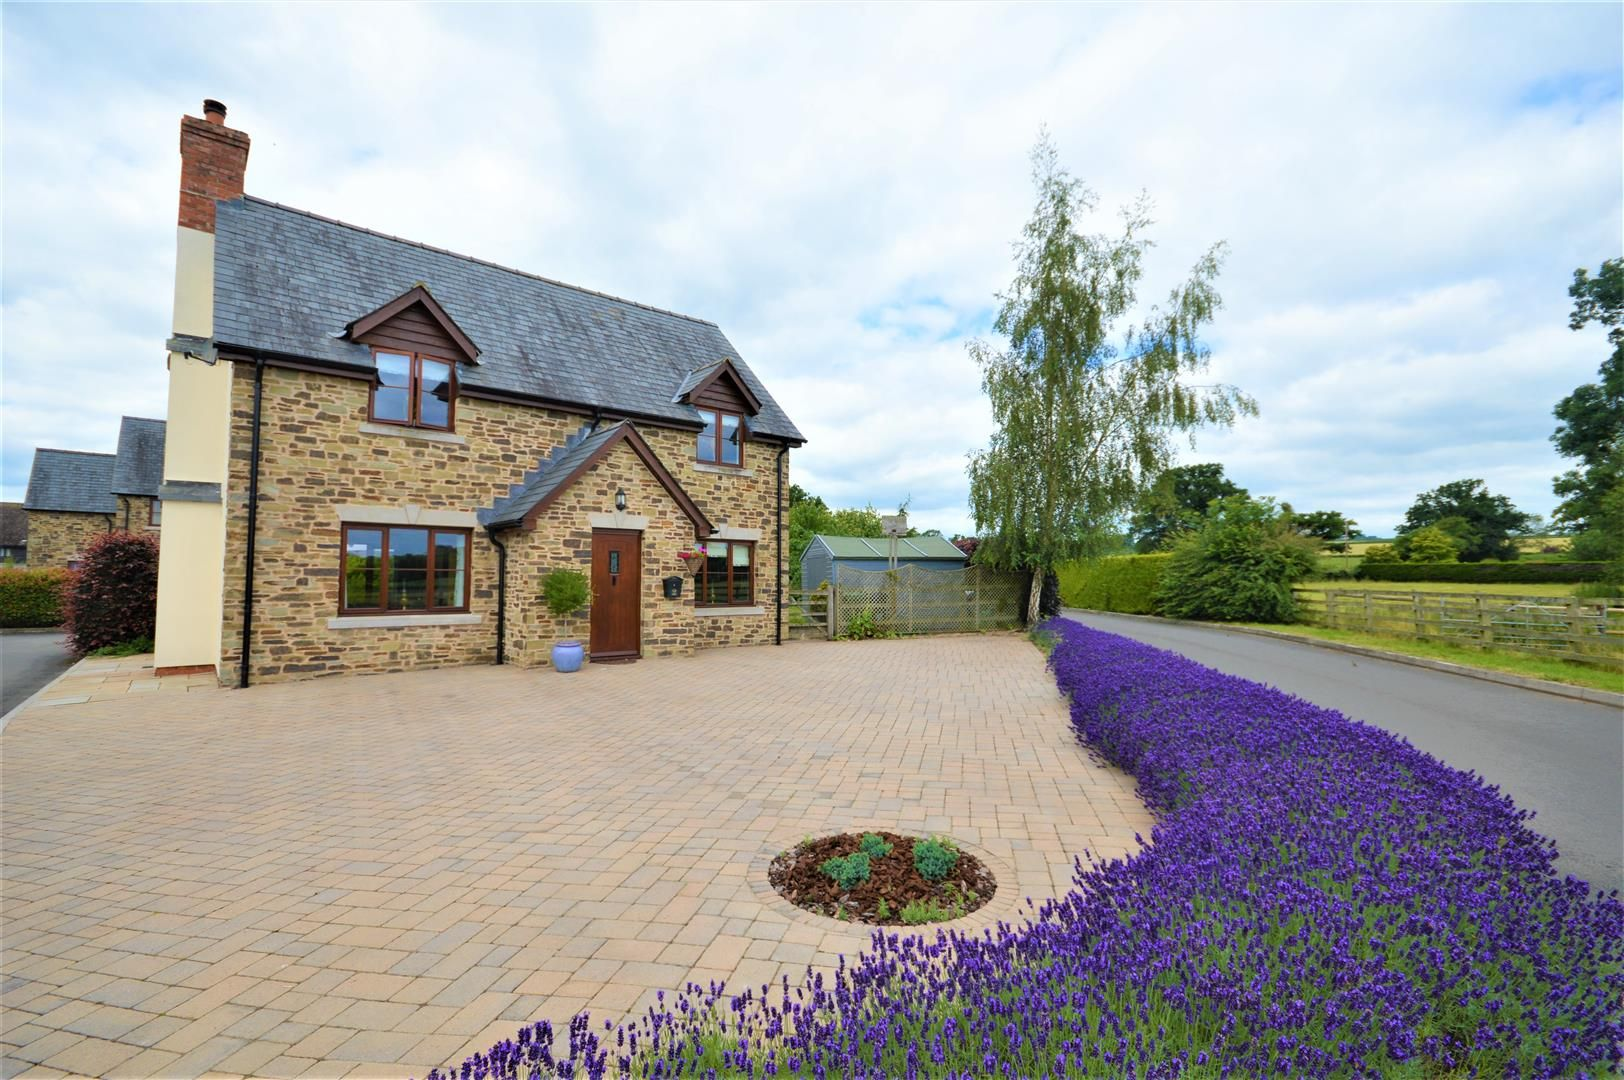 4 bed detached for sale in Eardisley - Property Image 1